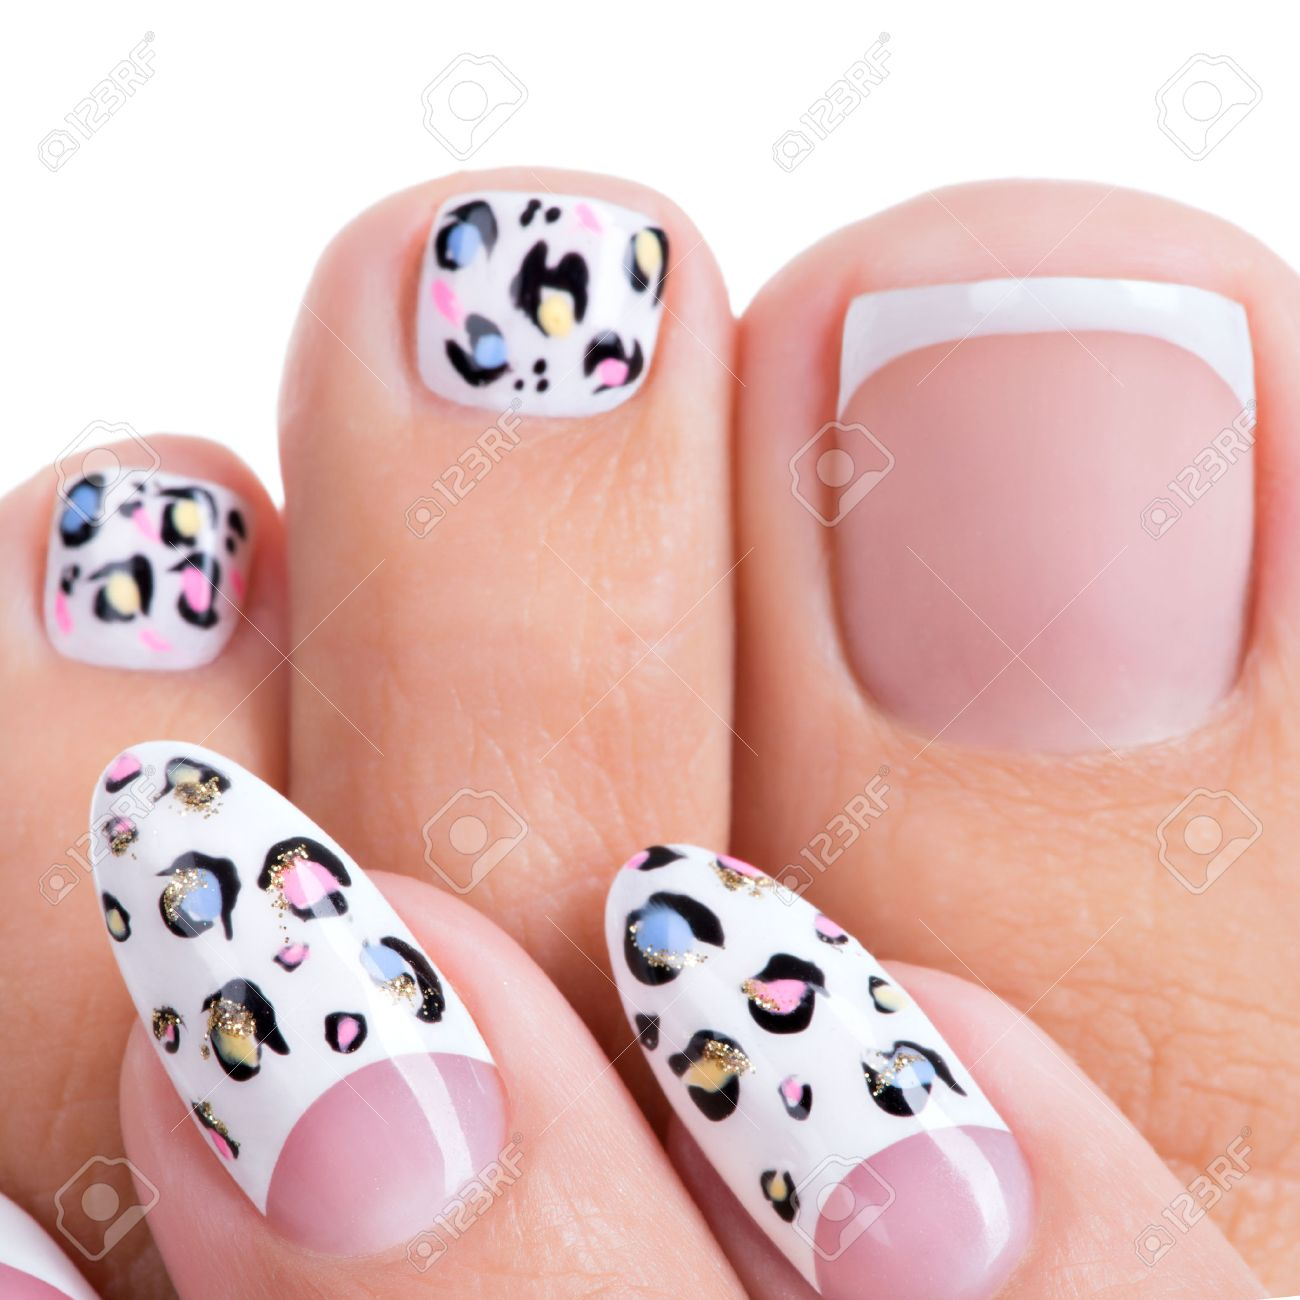 Beautiful womans nails of hands and legs with beautiful french beautiful womans nails of hands and legs with beautiful french manicure pedicure with art design prinsesfo Choice Image